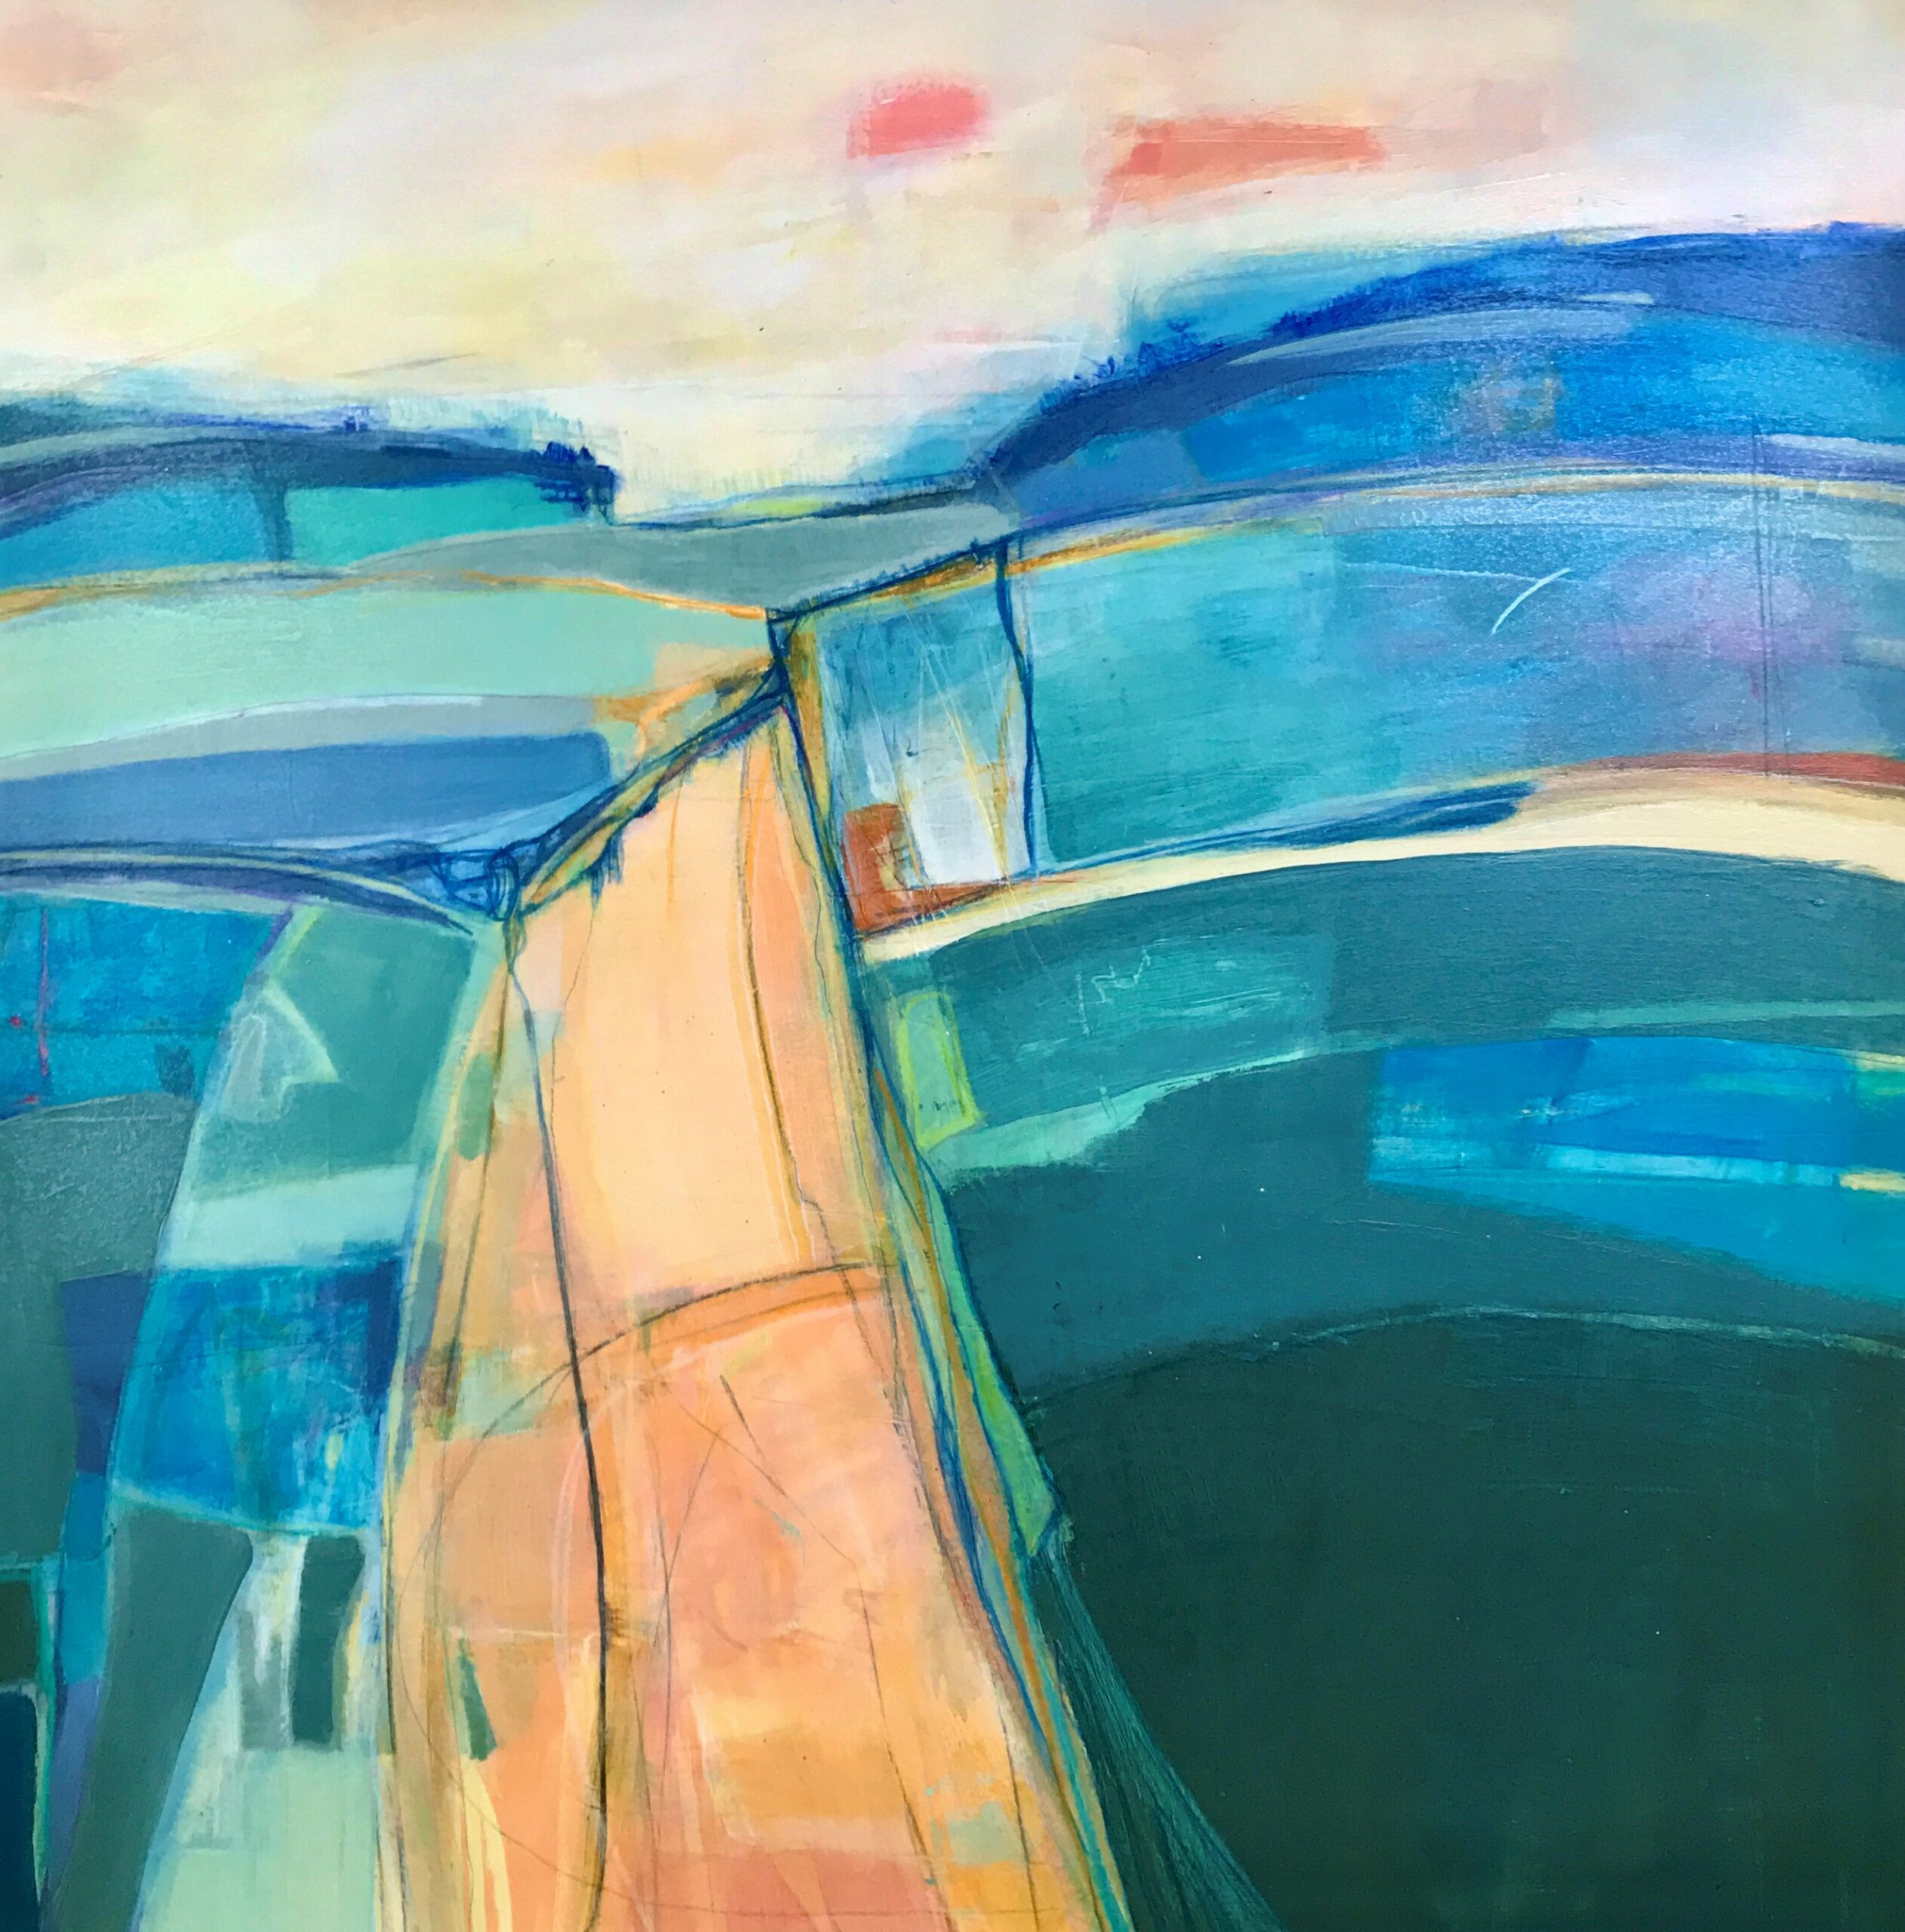 Annie Green, Layers of the landscape, mixed media on- board, 57x57cm framed